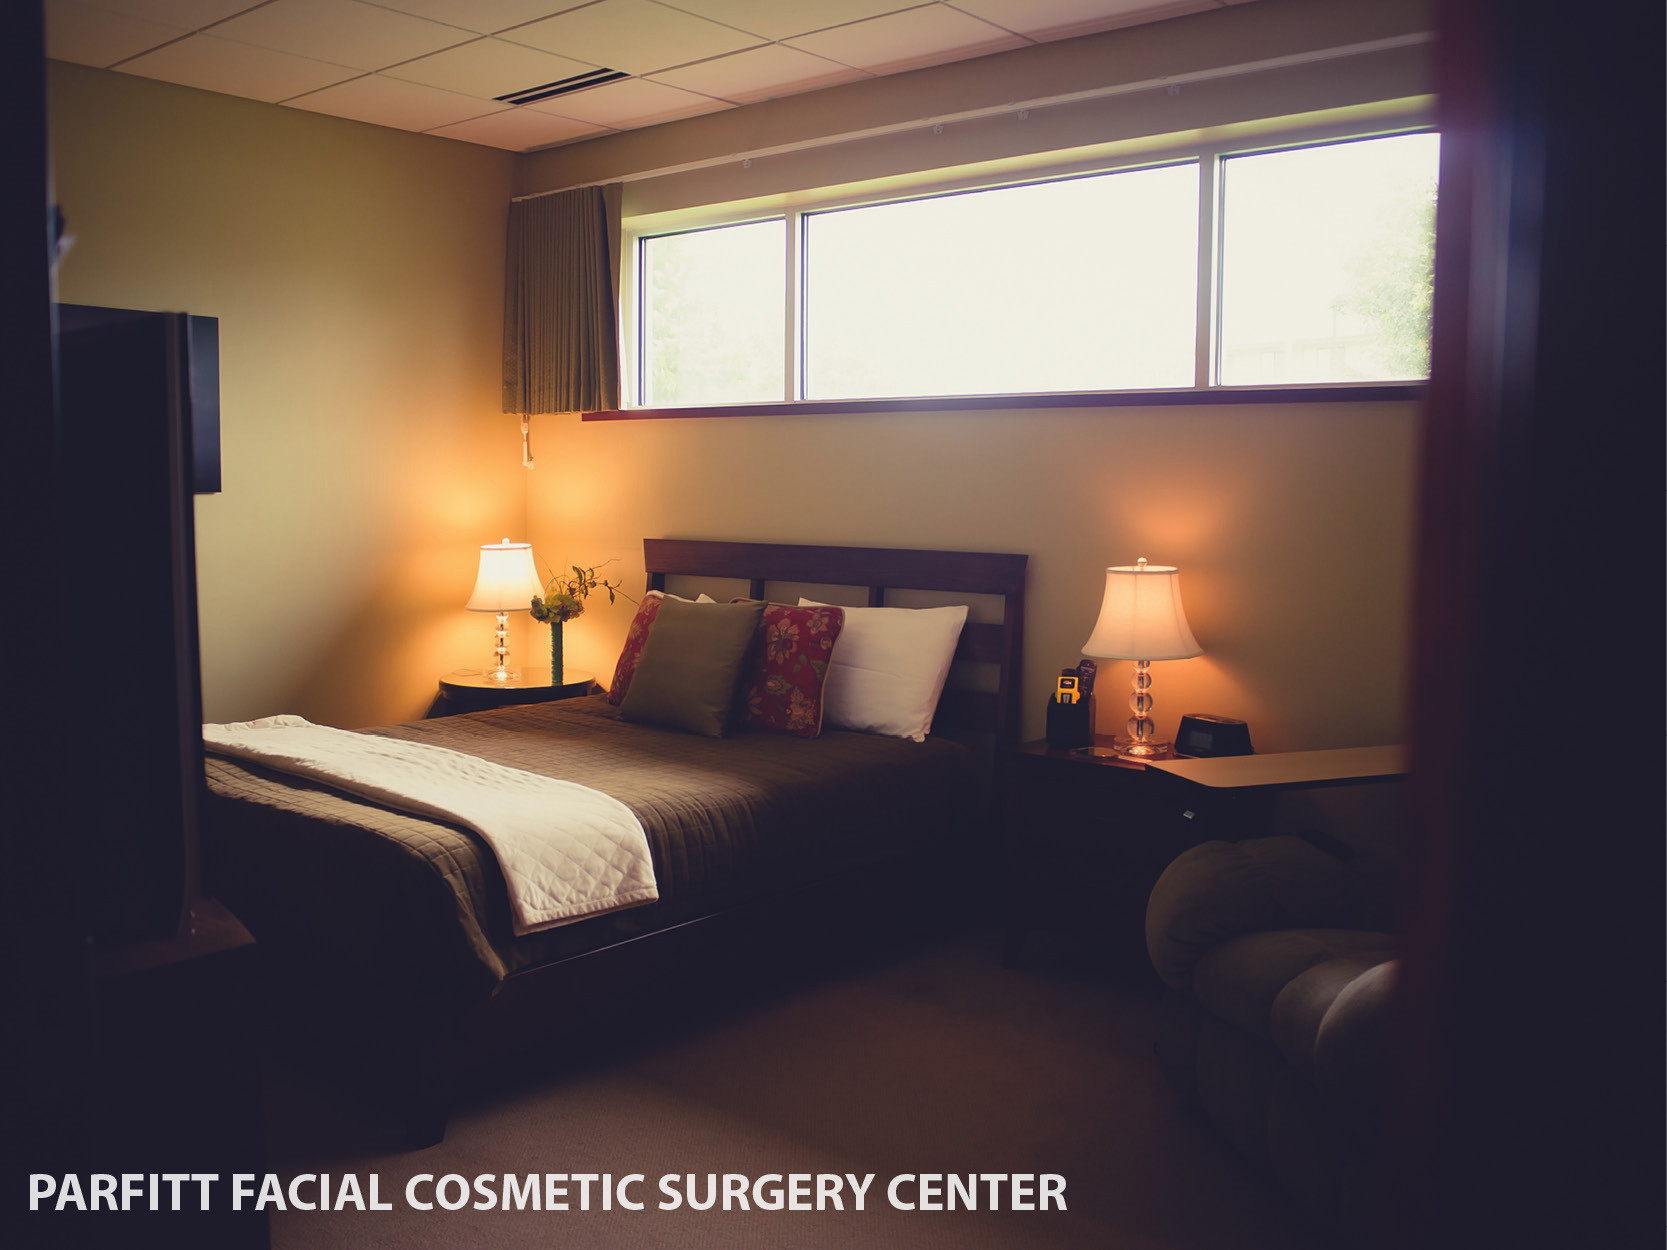 Big Center for facial cosmetic superb and